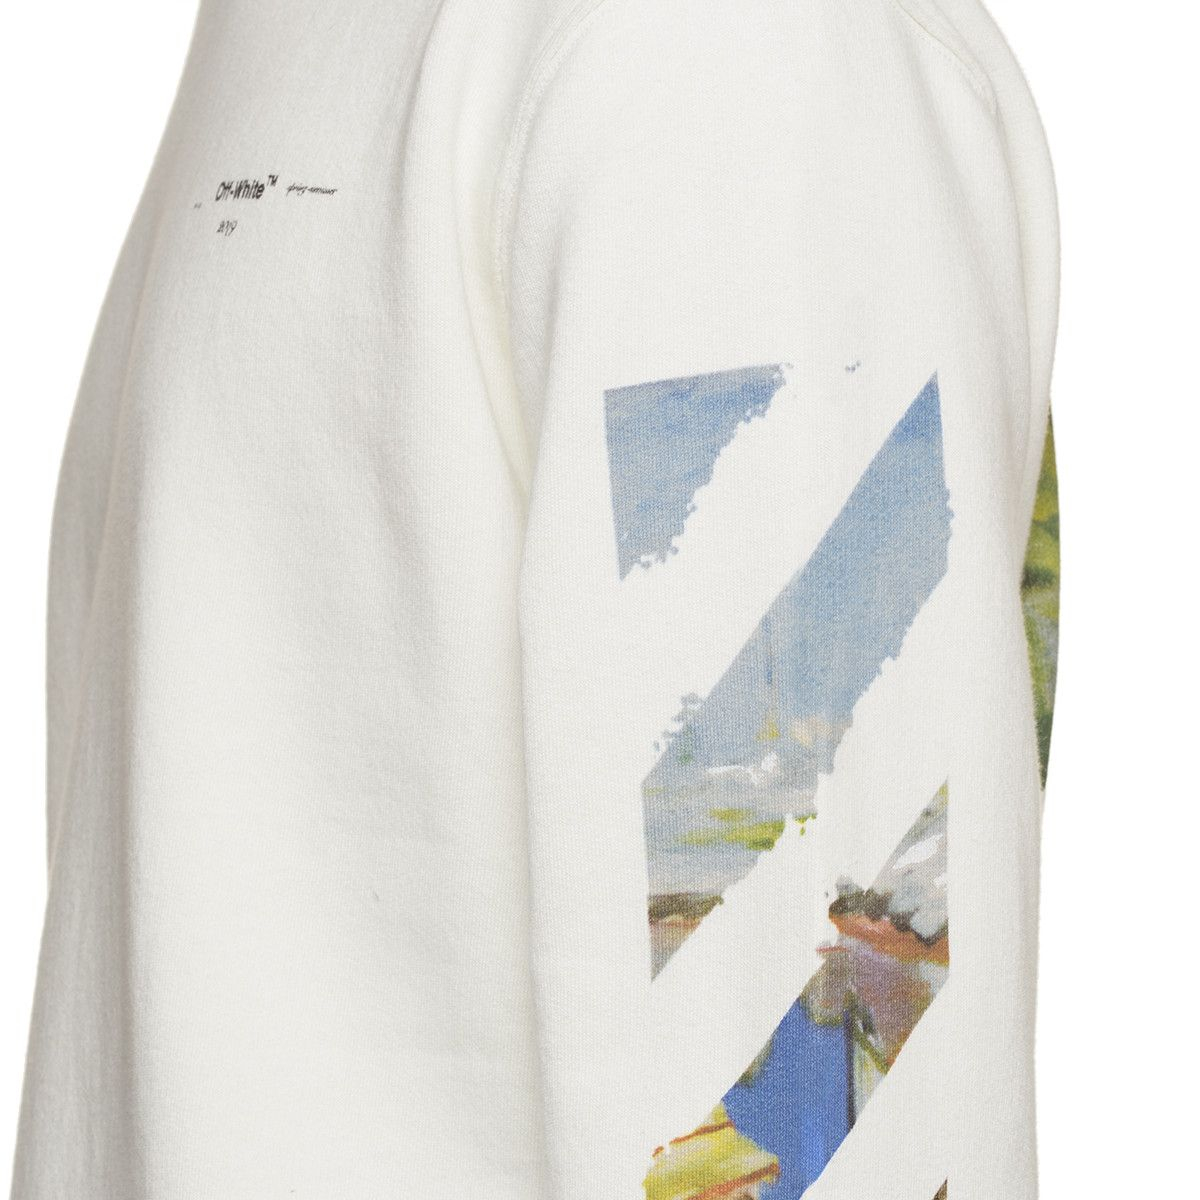 cad19718 Diag Colored Arrows sweatshirt | GRAPHIC TEXT LAYOUTS | White c ...